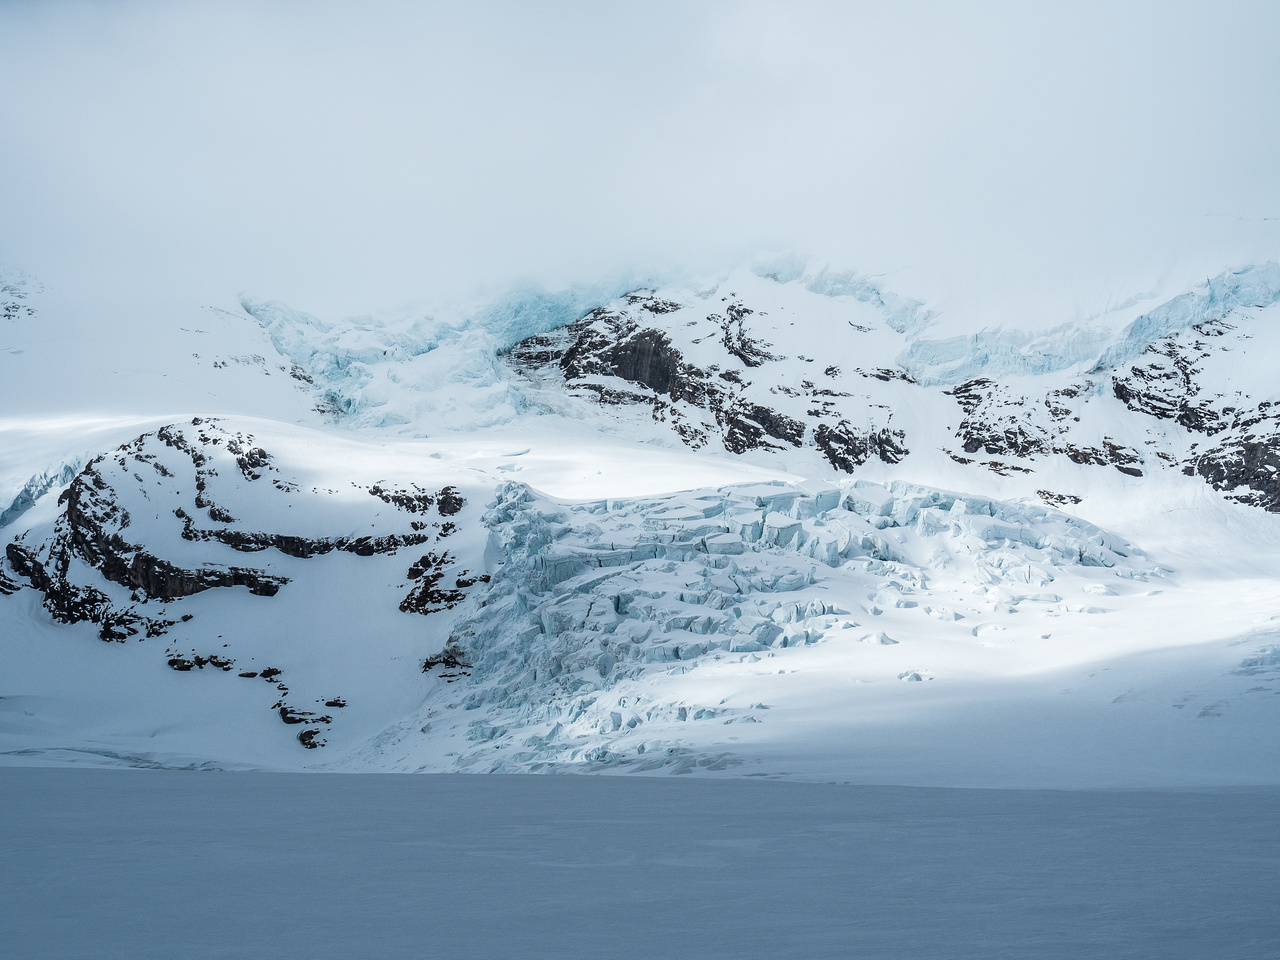 The icefall coming down the so-called 'Robson Cirque' is pretty impressive.